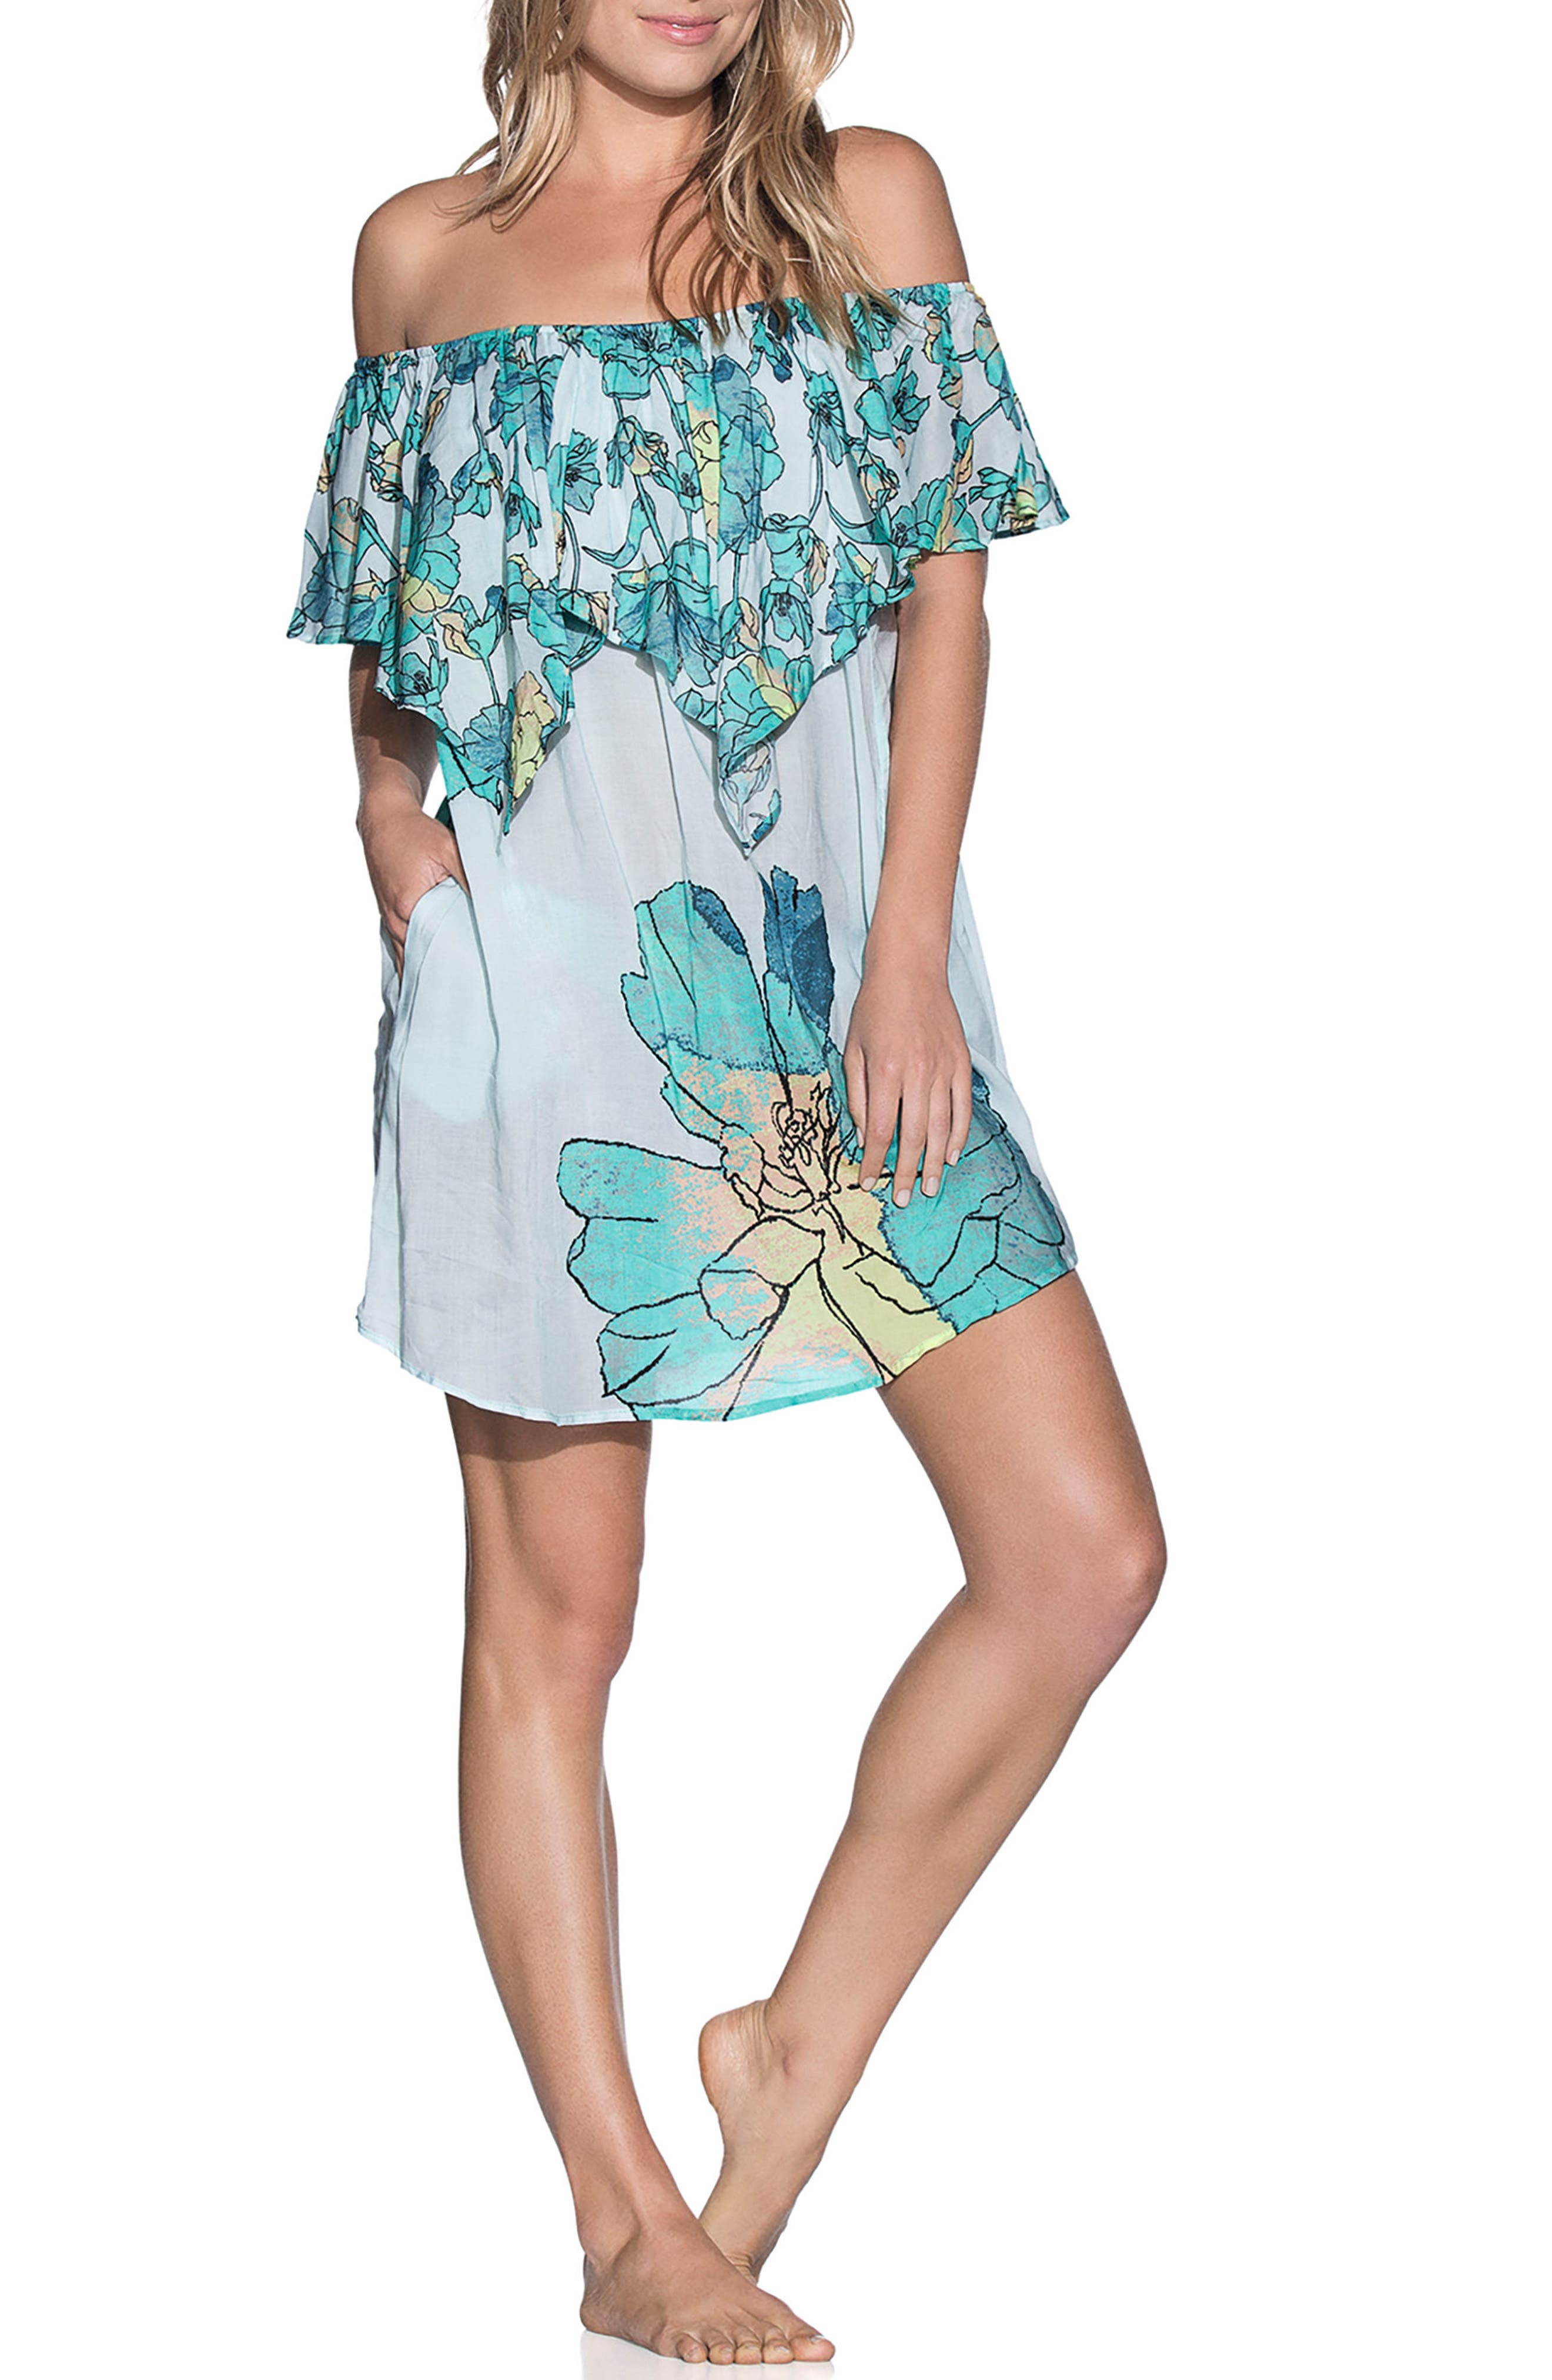 Laughing Leaves Cover-Up Dress,                             Main thumbnail 1, color,                             Teal Multi